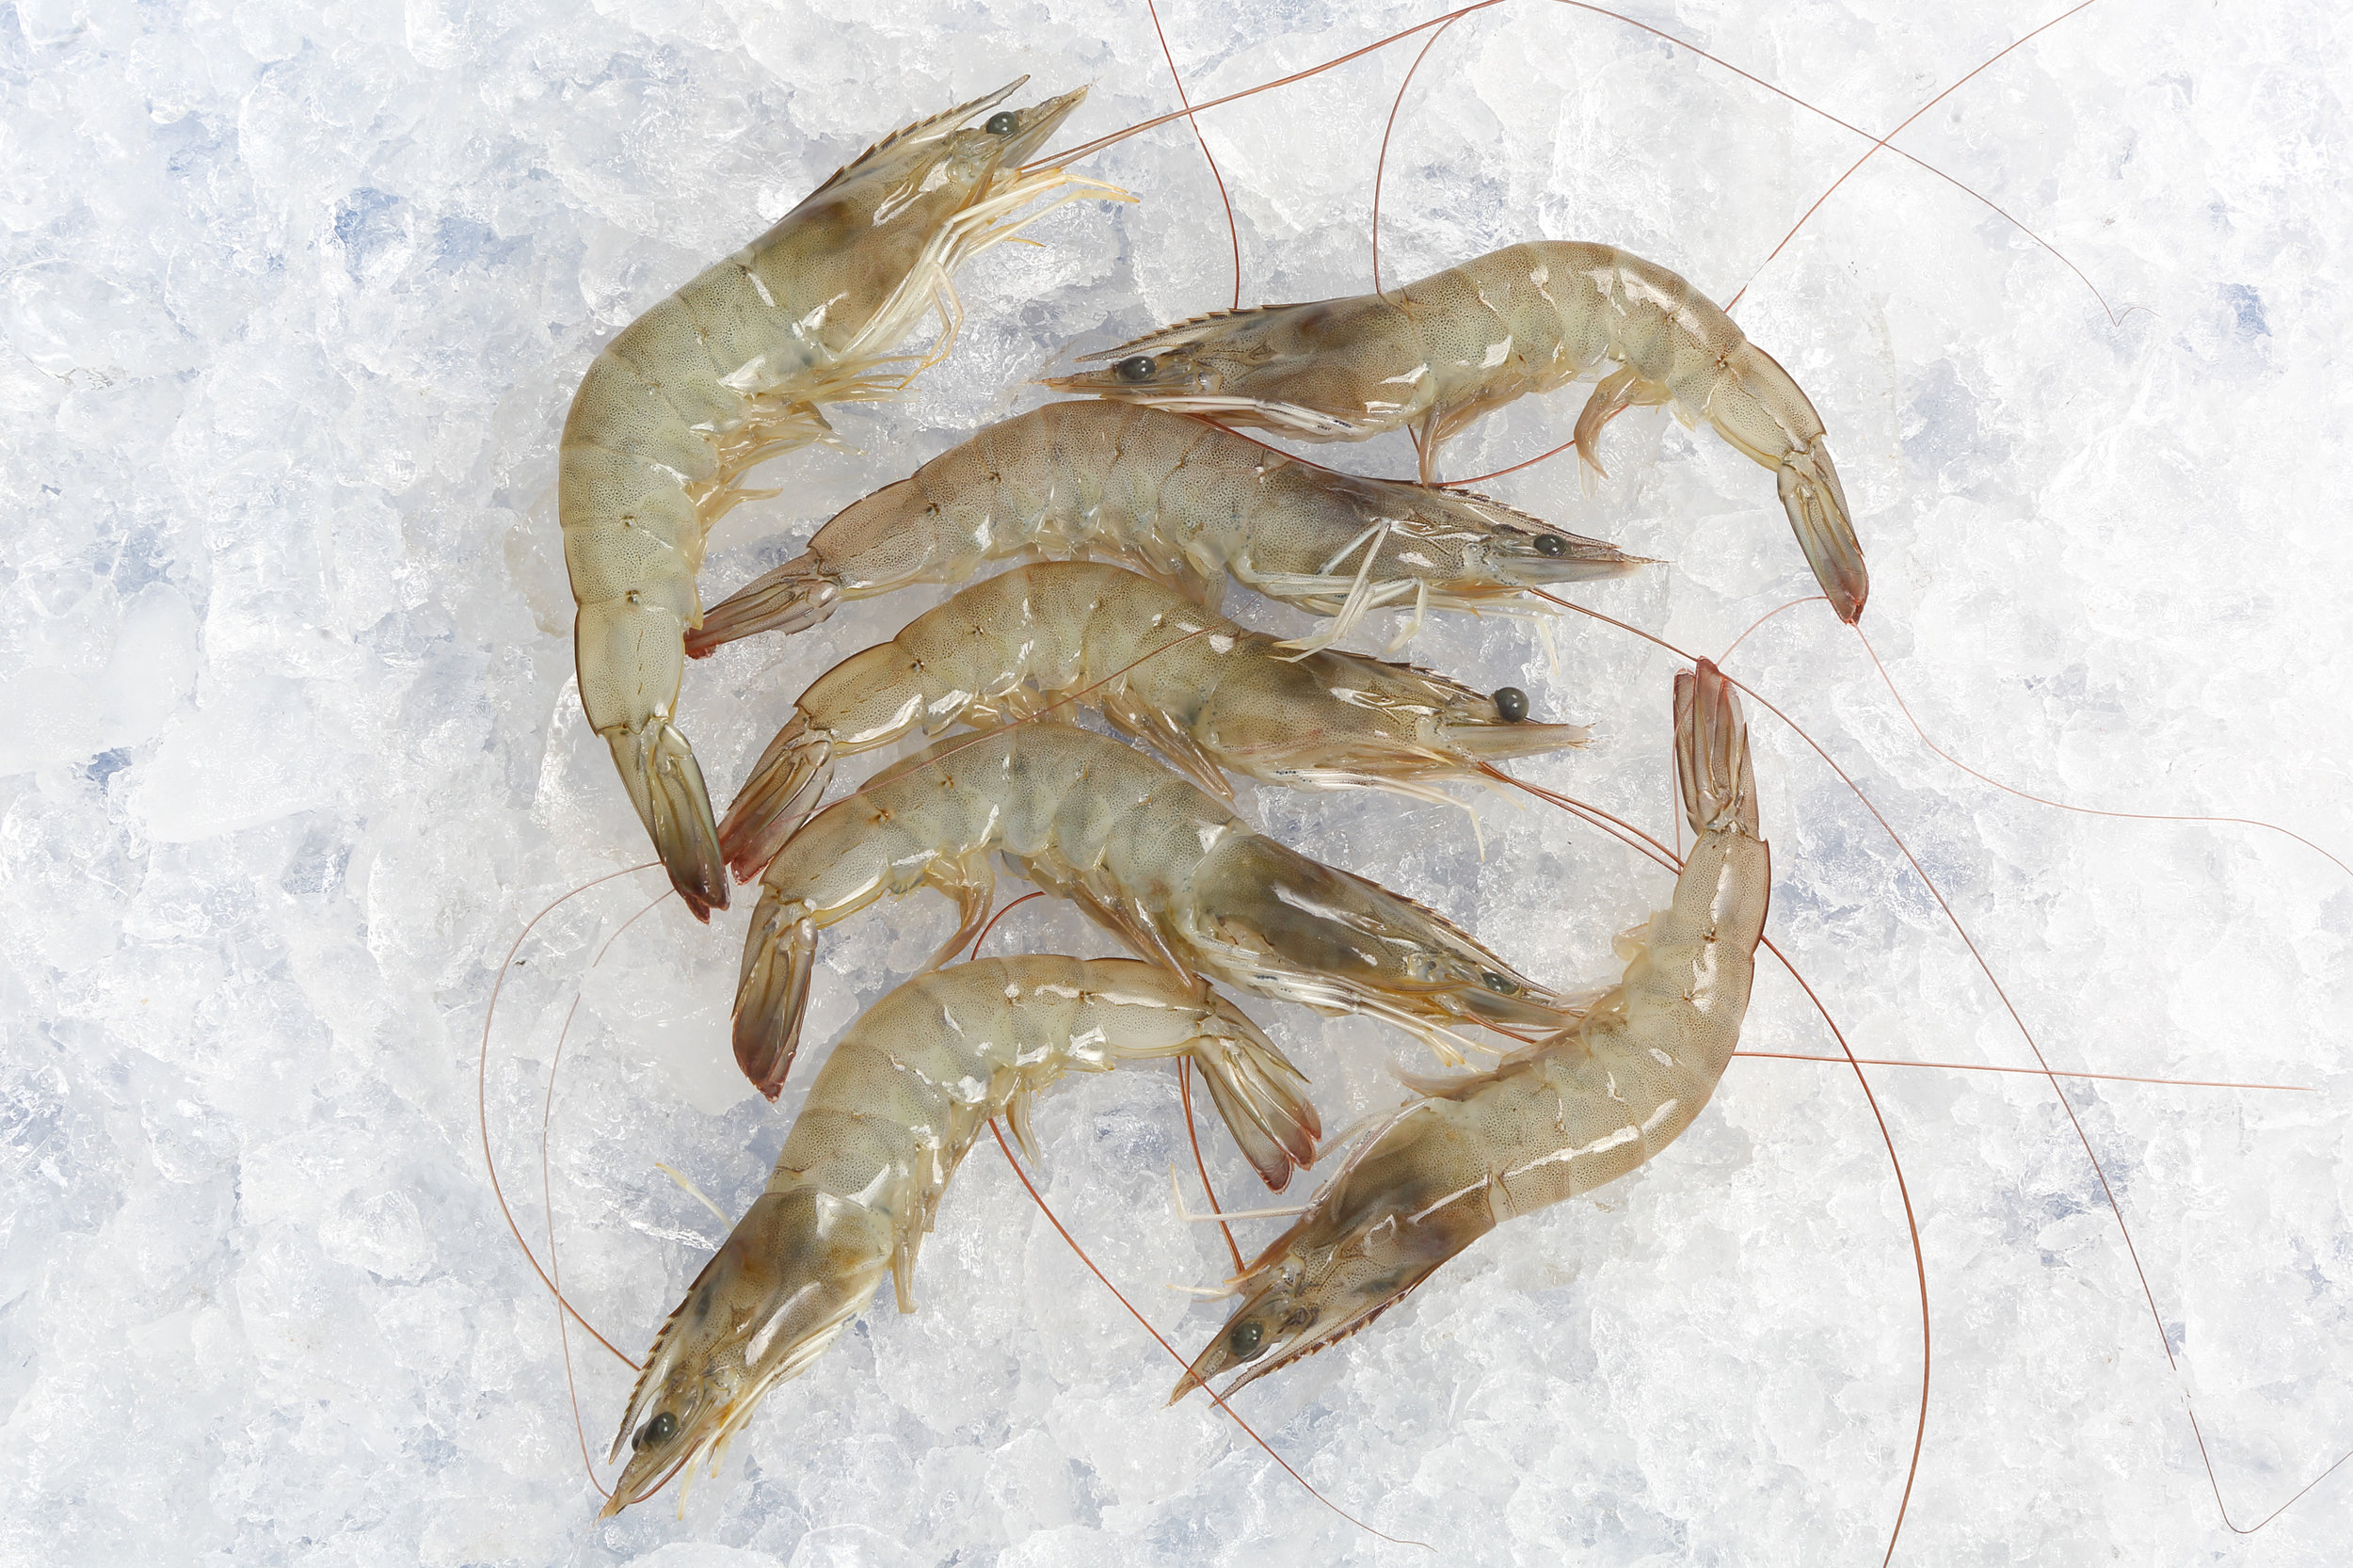 Frozen Shrimps - Seacaught/Farmed ShrimpsVannamei , Tiger; Headon / Headless / PUD